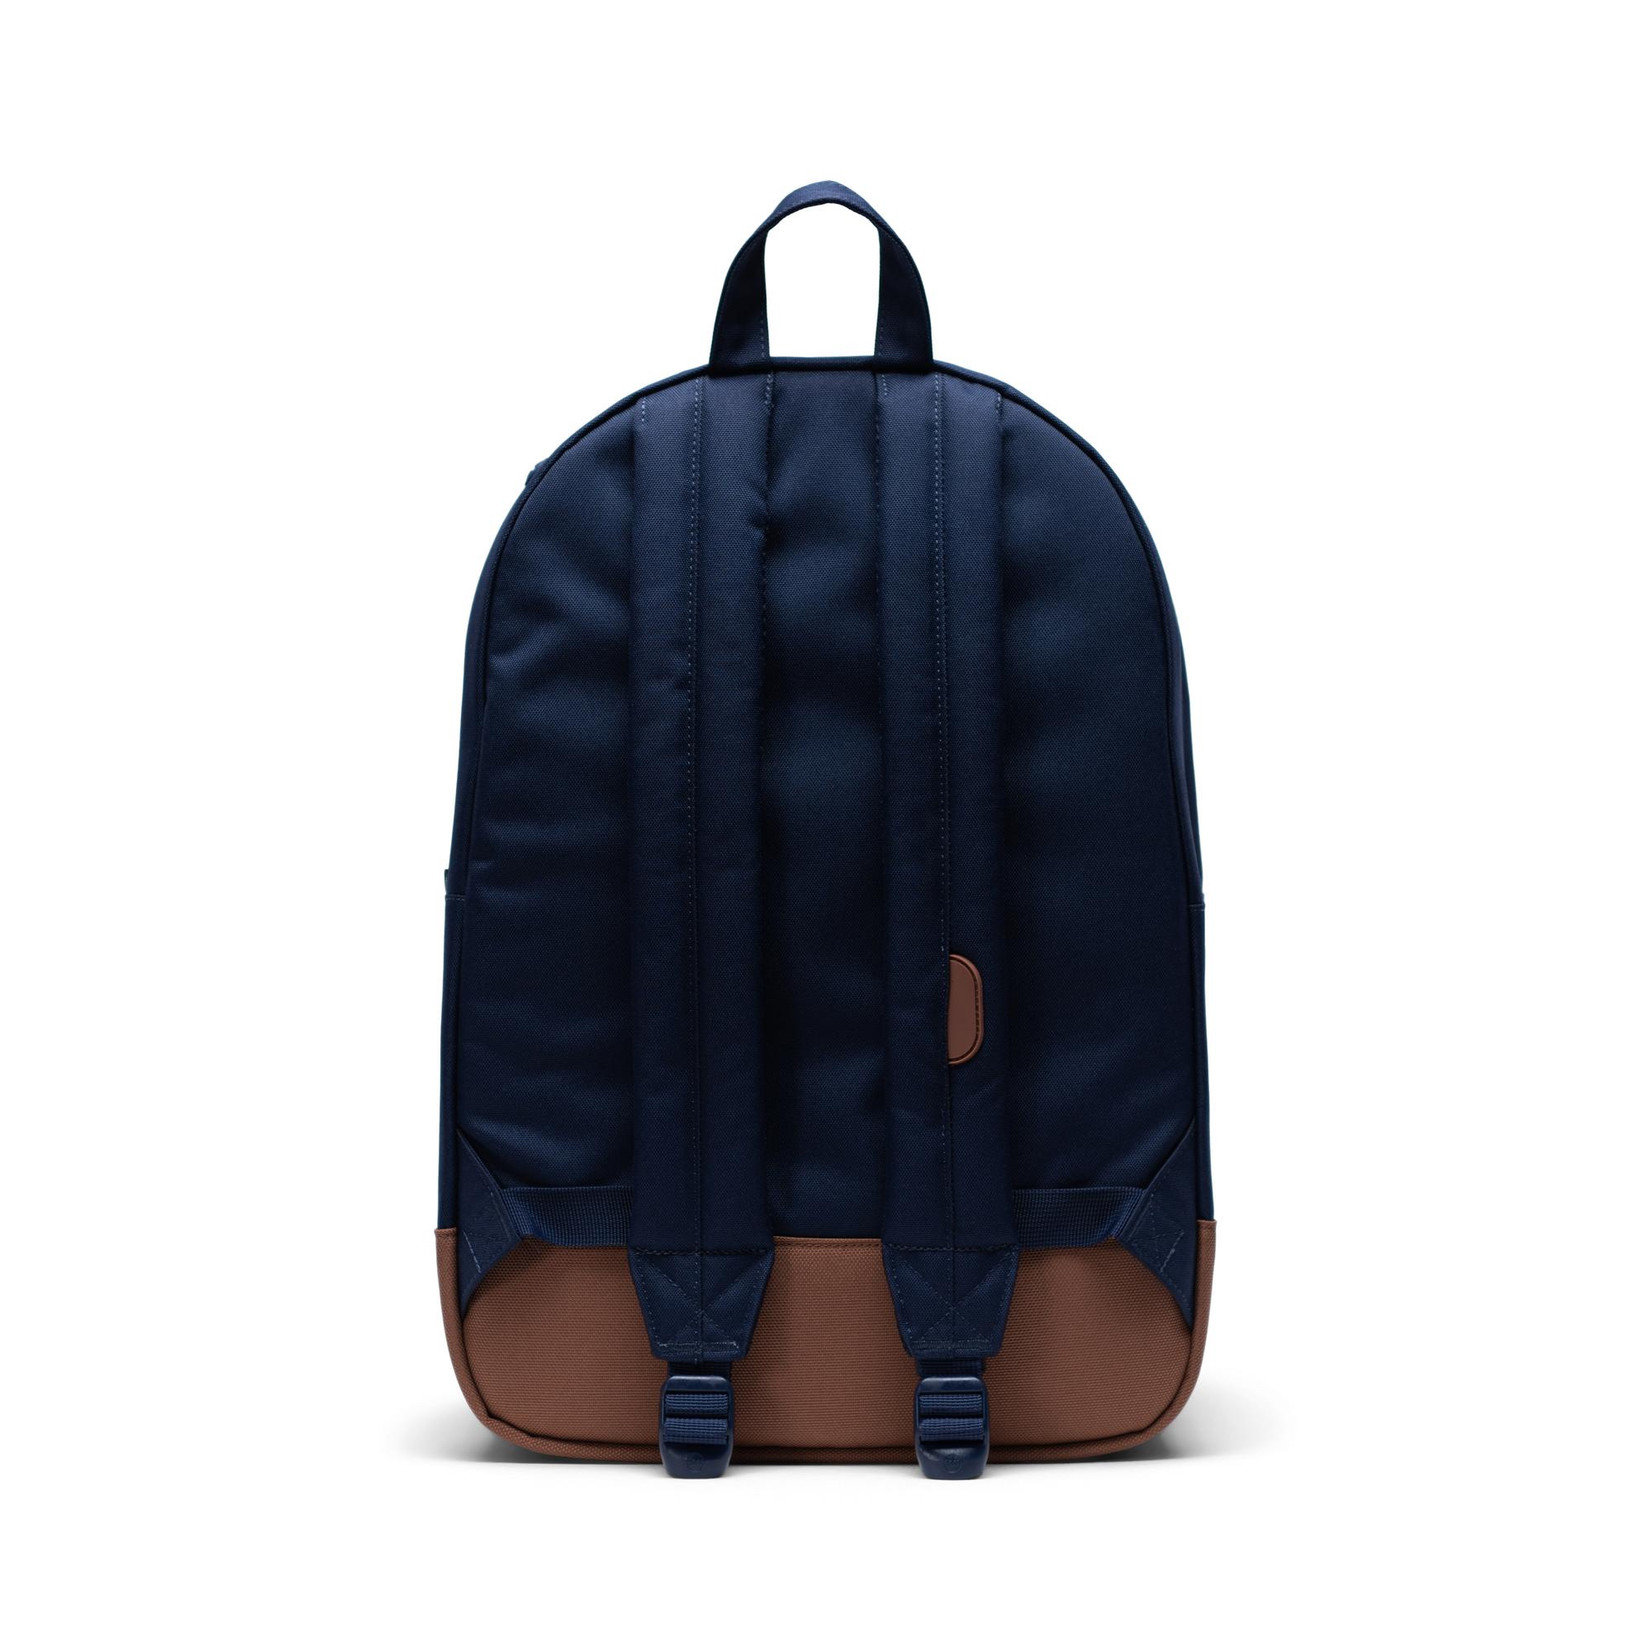 Herschel Heritage Peacoat/Saddle brown